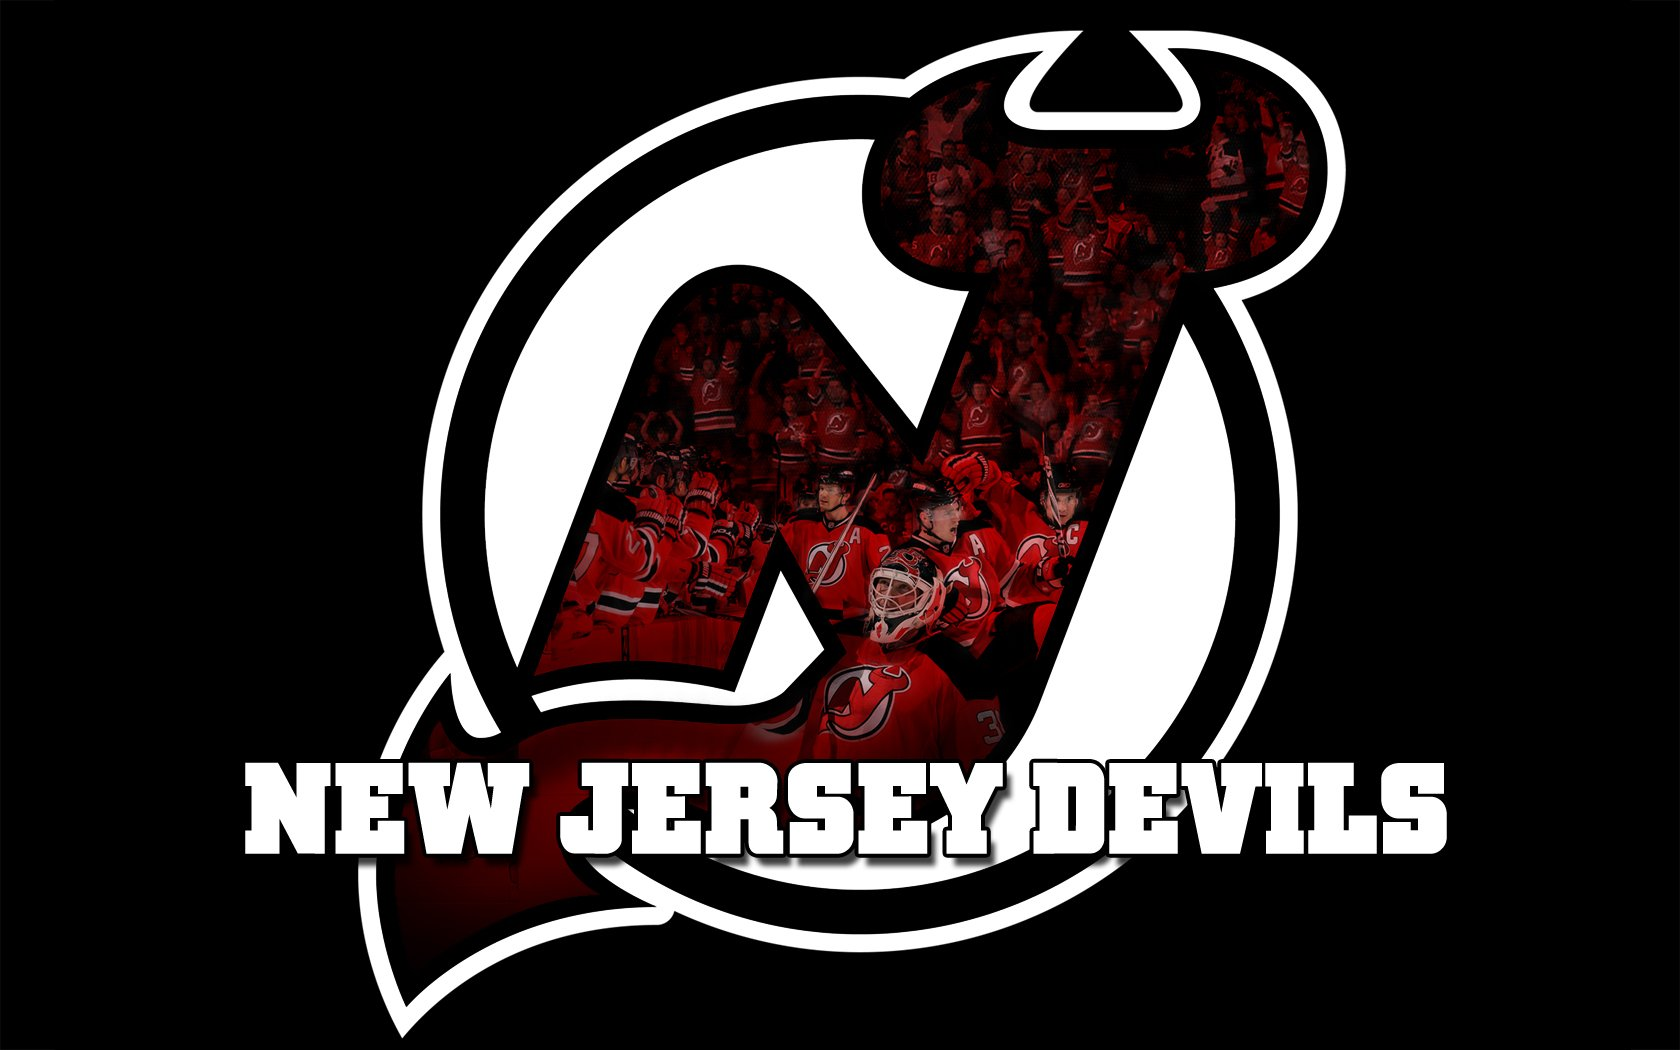 New Jersey Devils Wallpapers   New Jersey Devils   Fan Zone 1680x1050